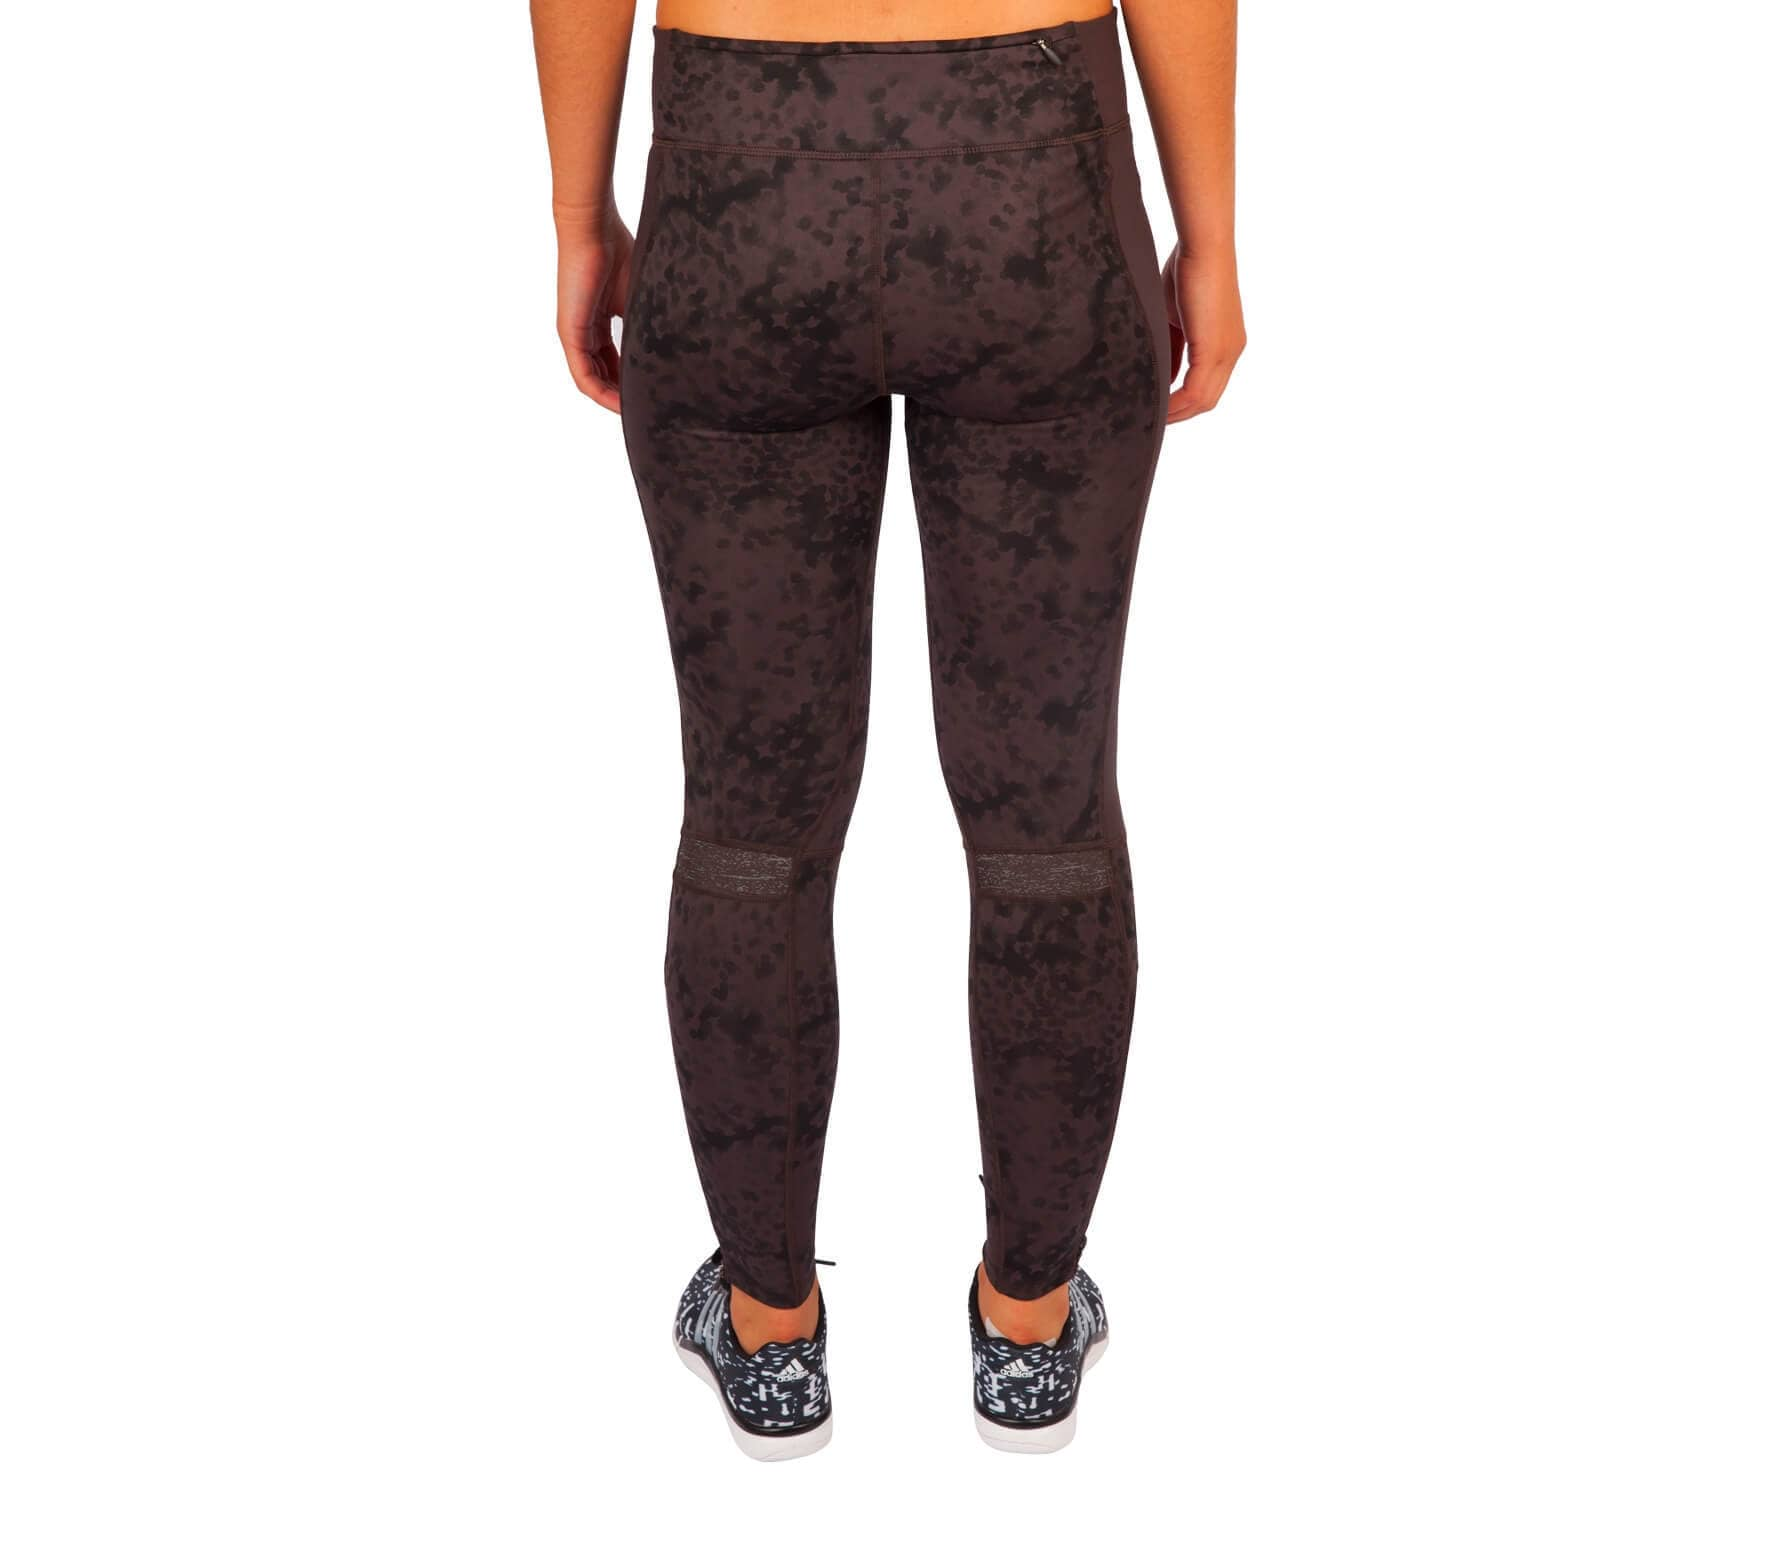 f4ee16e187a5f Adidas - Supernova Graphic Long Tight women s running shorts (dark  brown black)